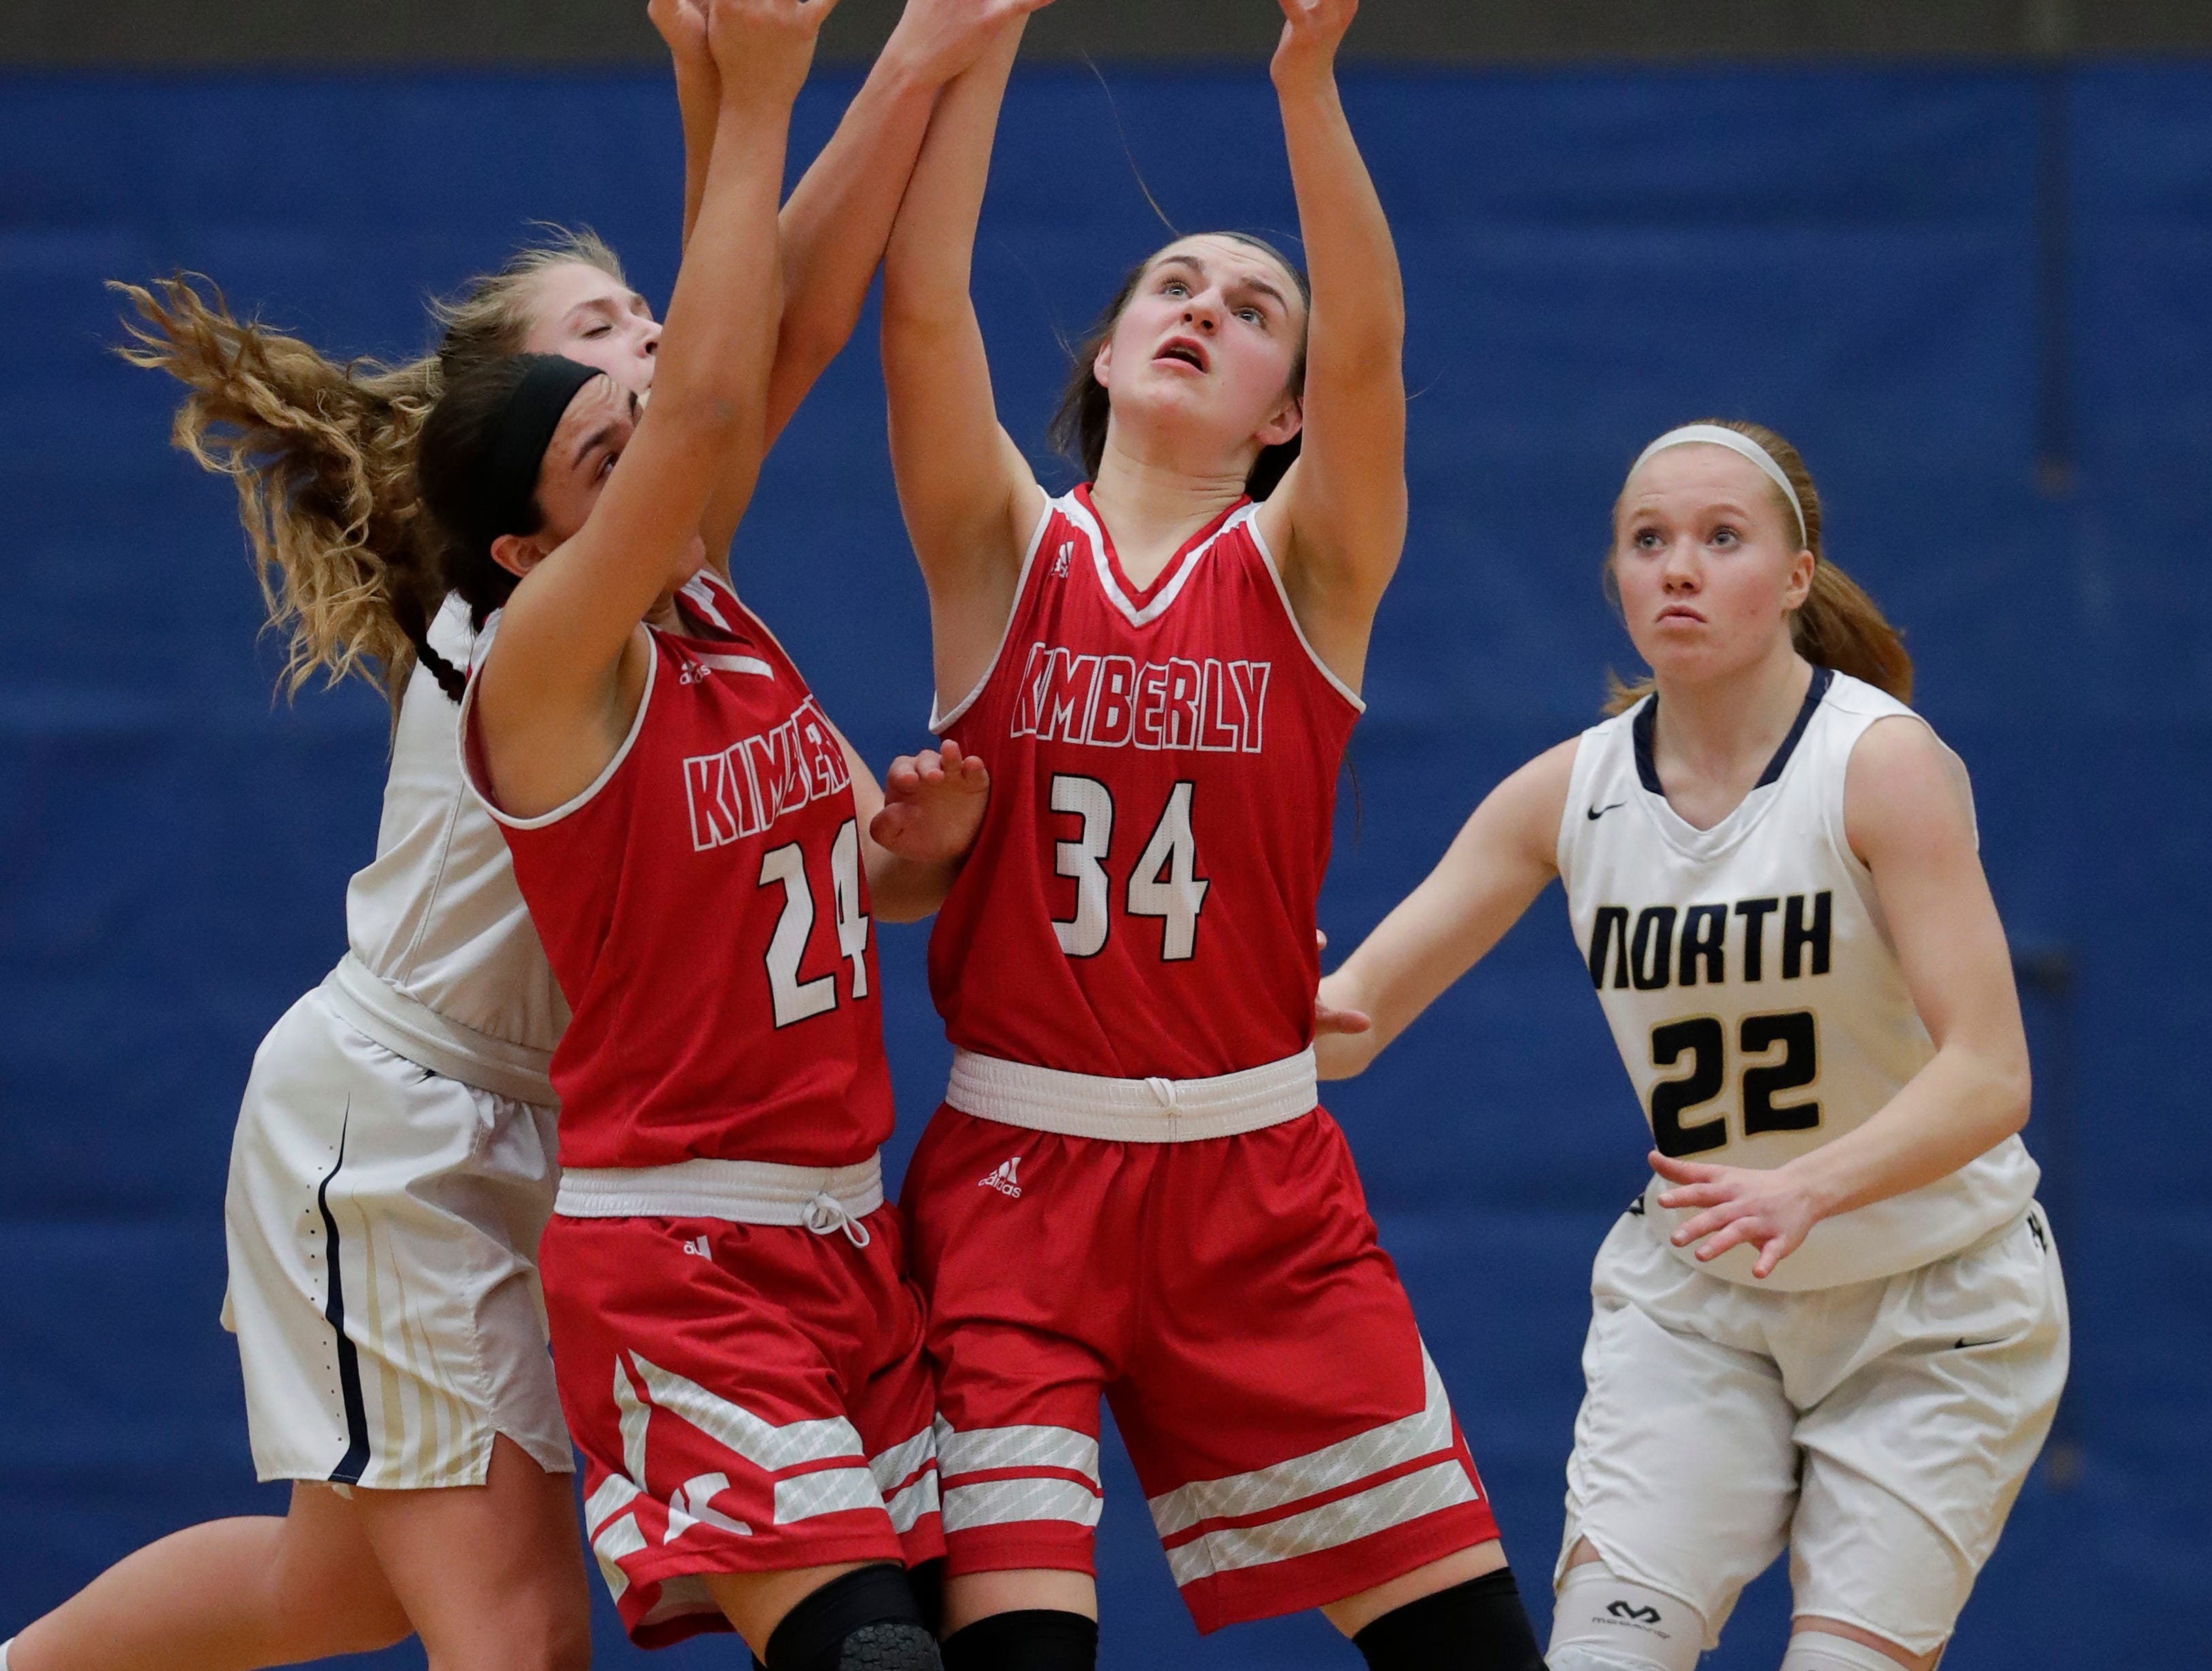 Appleton North High School's Lilli Van Handel (21) and Kayla Schroeder (22) go for a rebound against Kimberly High School's Shea Dechant (24) and Maddy Schreiber (34) during their girls basketball game Tuesday, January 8, 2019, in Appleton, Wis. Dan Powers/USA TODAY NETWORK-Wisconsin